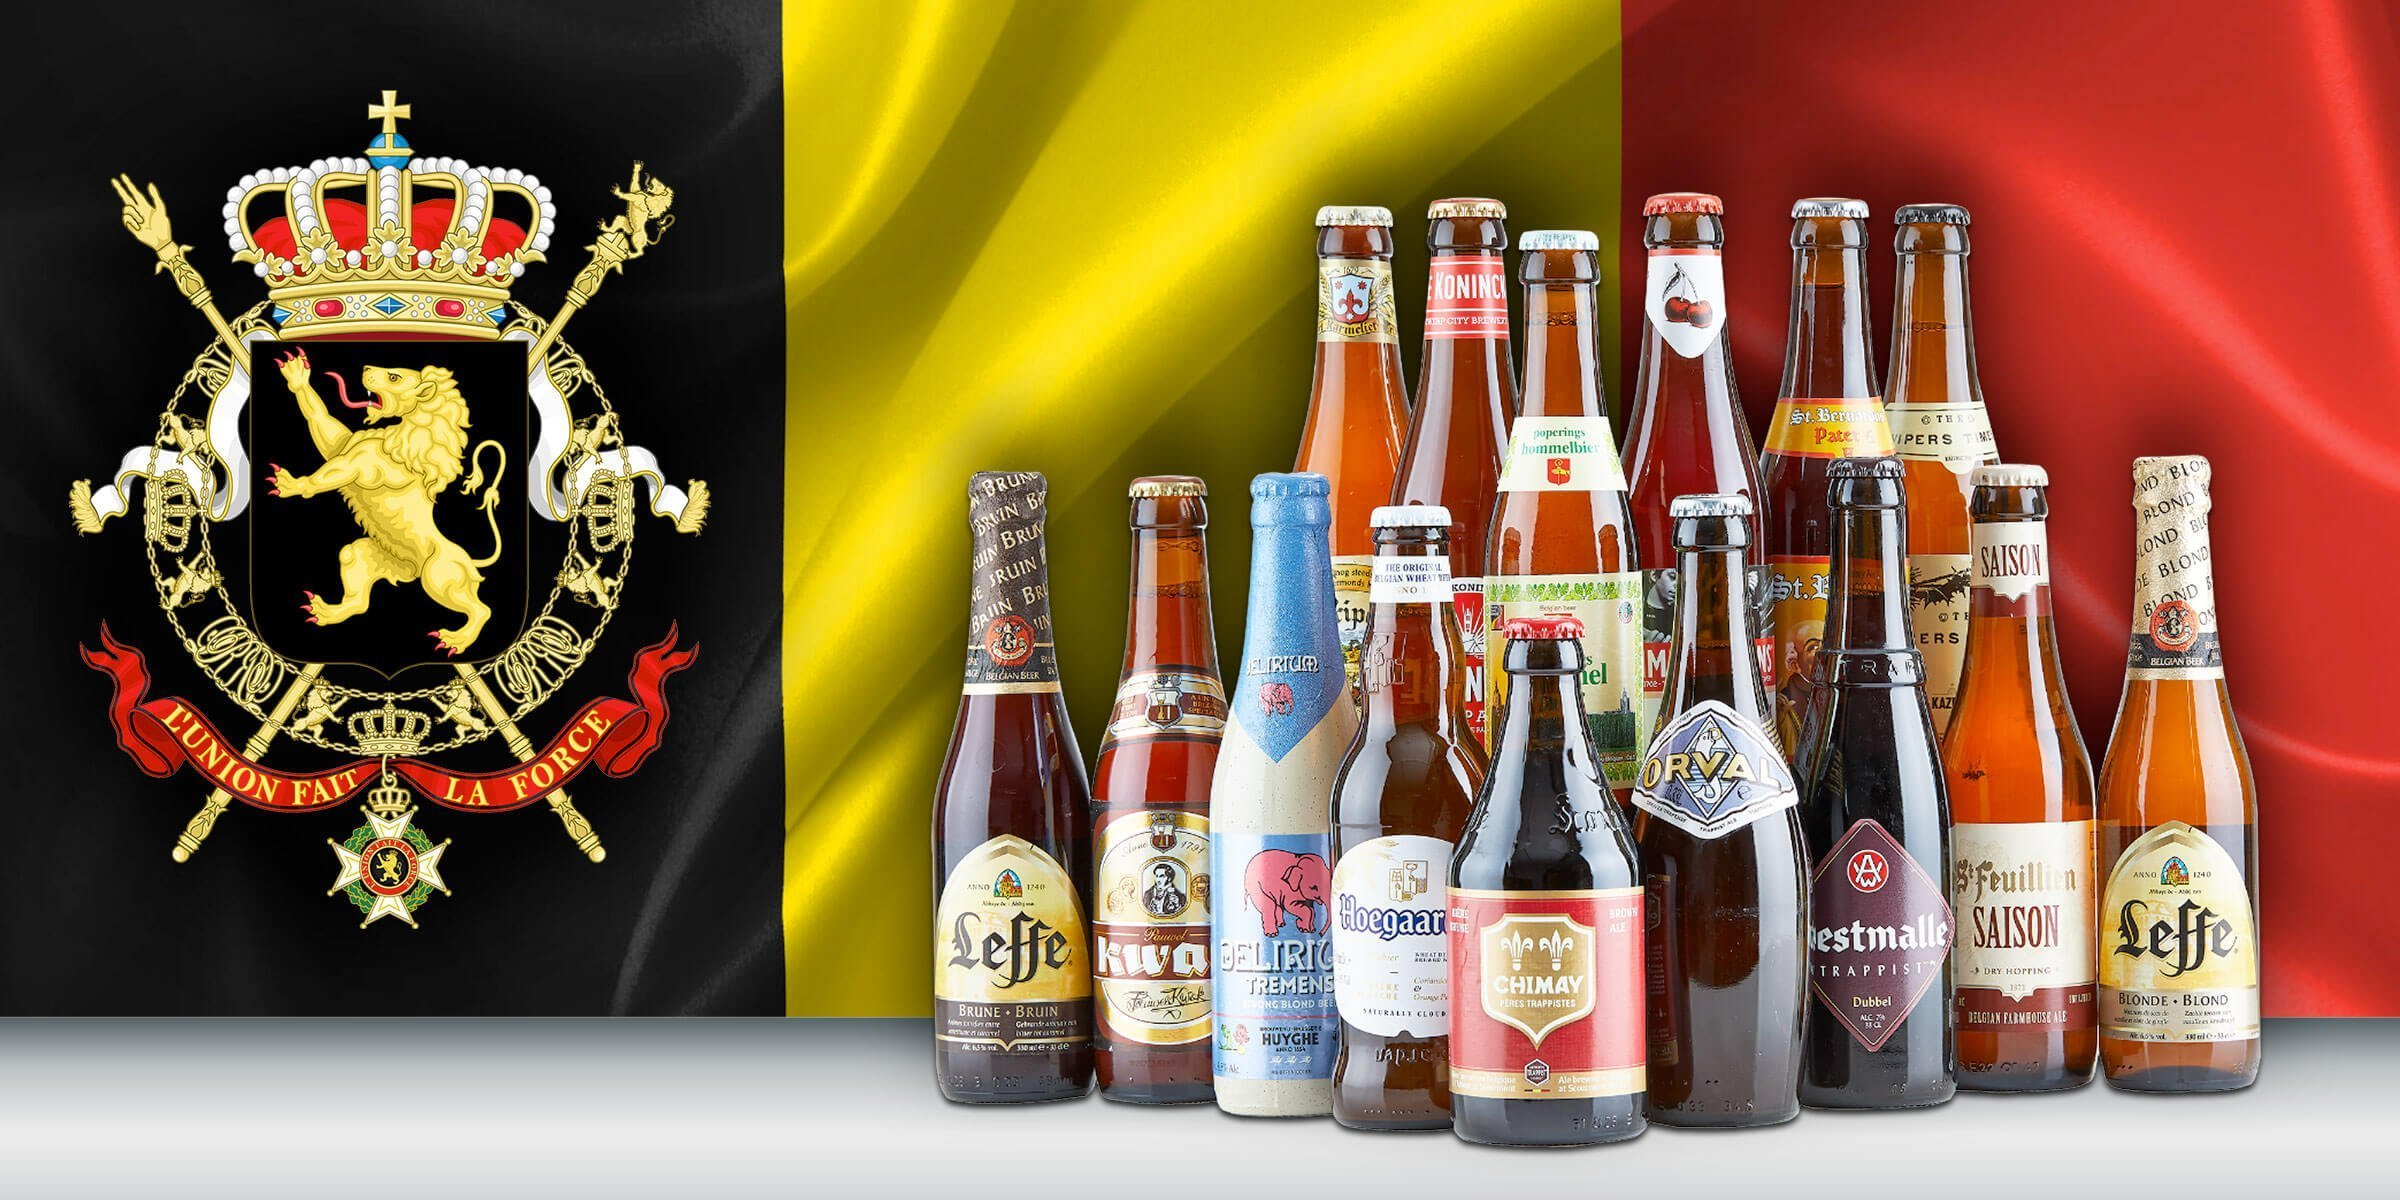 The wonderful Belgian brewing tradition includes a wide range of beer styles that are light and fruity, dark and malty, sour and funky. This article briefly examines their origin.